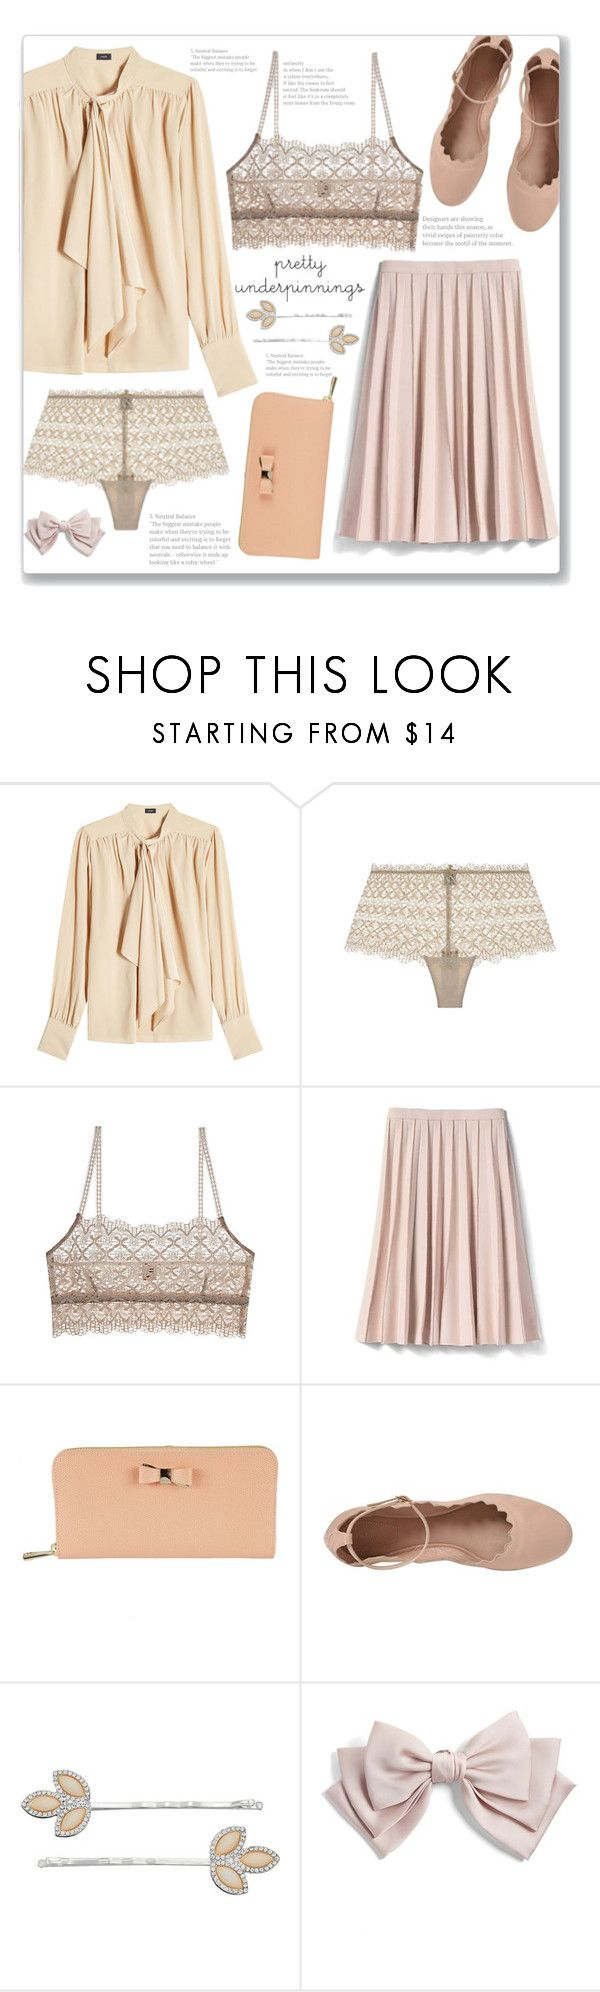 """""""Just Peachy"""" by linlizzy ❤ liked on Polyvore featuring Joseph, Only Hearts, Banana Republic, Furla, Chloé, LC Lauren Conrad, Cara and vintage"""